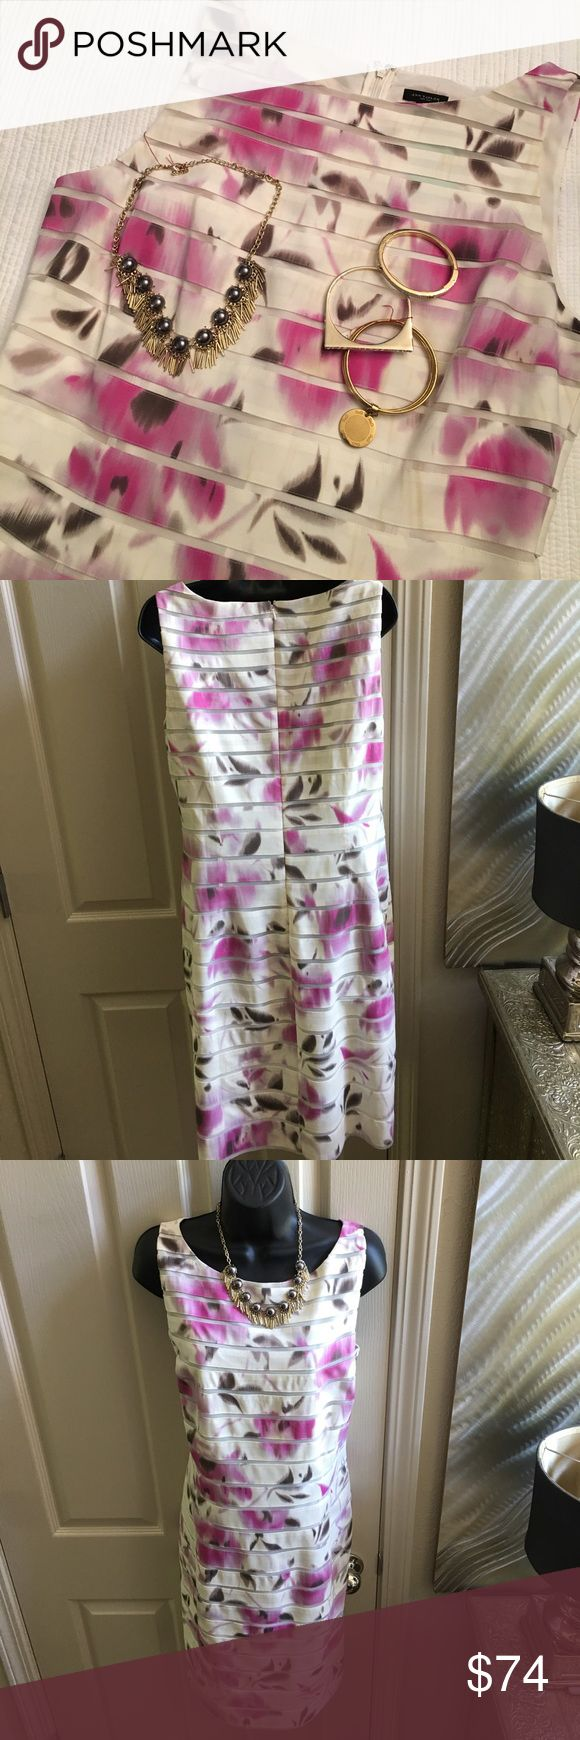 "Beautiful Print- Ann Taylor Wedding??? Romantic Dinner? Netting in between print. Hidden zipper. Waist 18"" bust19 1/2"" s/h 40"" skirt 24"" Ann Taylor Dresses Midi"